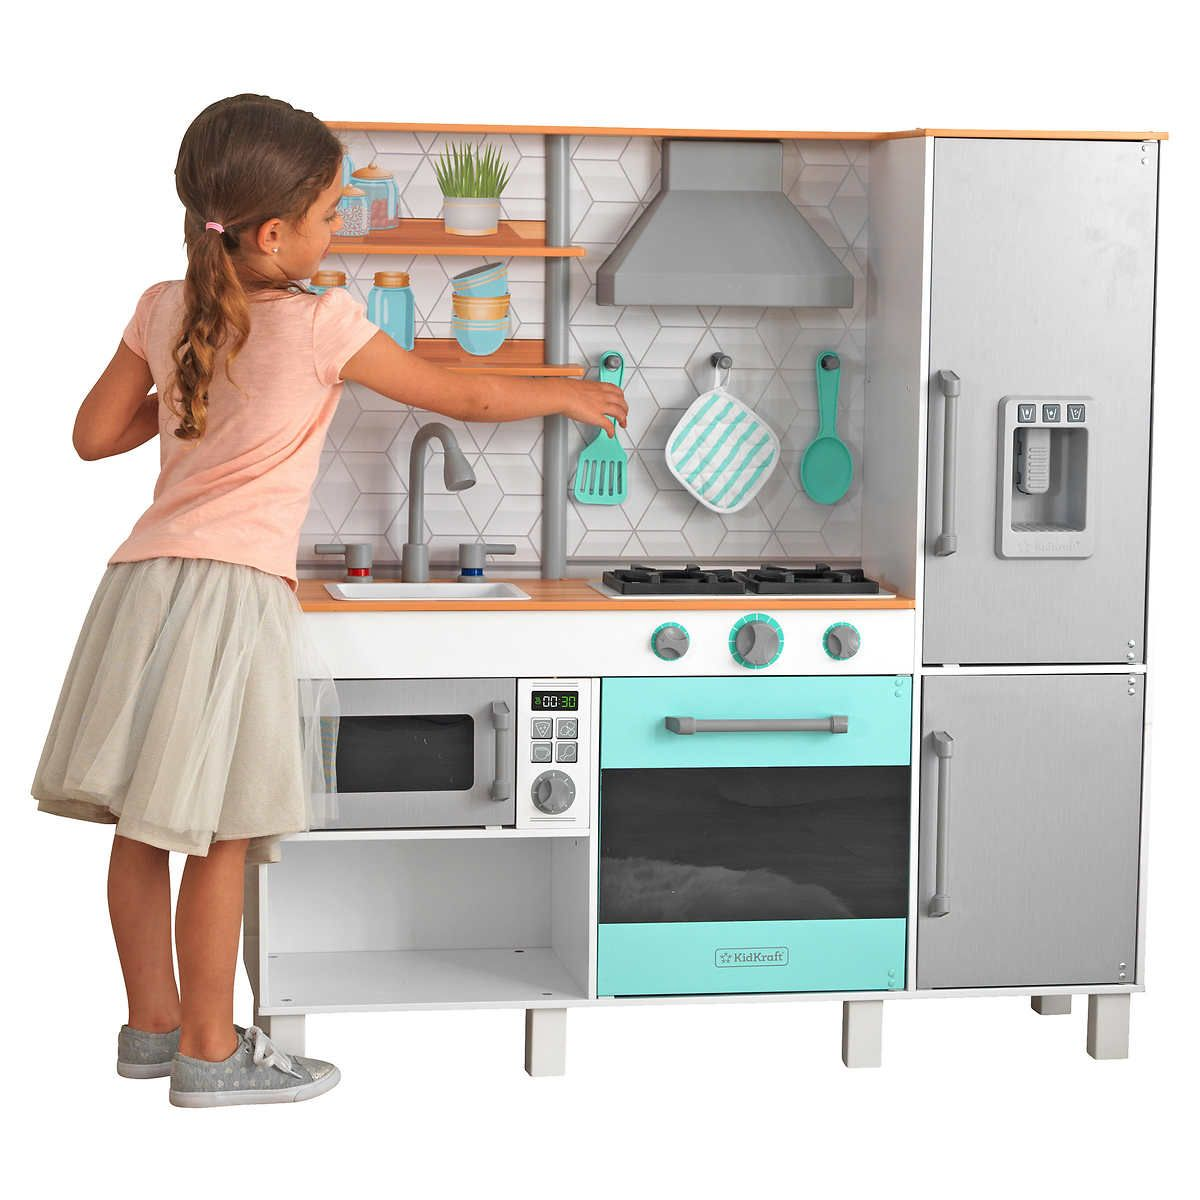 Costco gourmet kitchen play set cute baby kid finds play